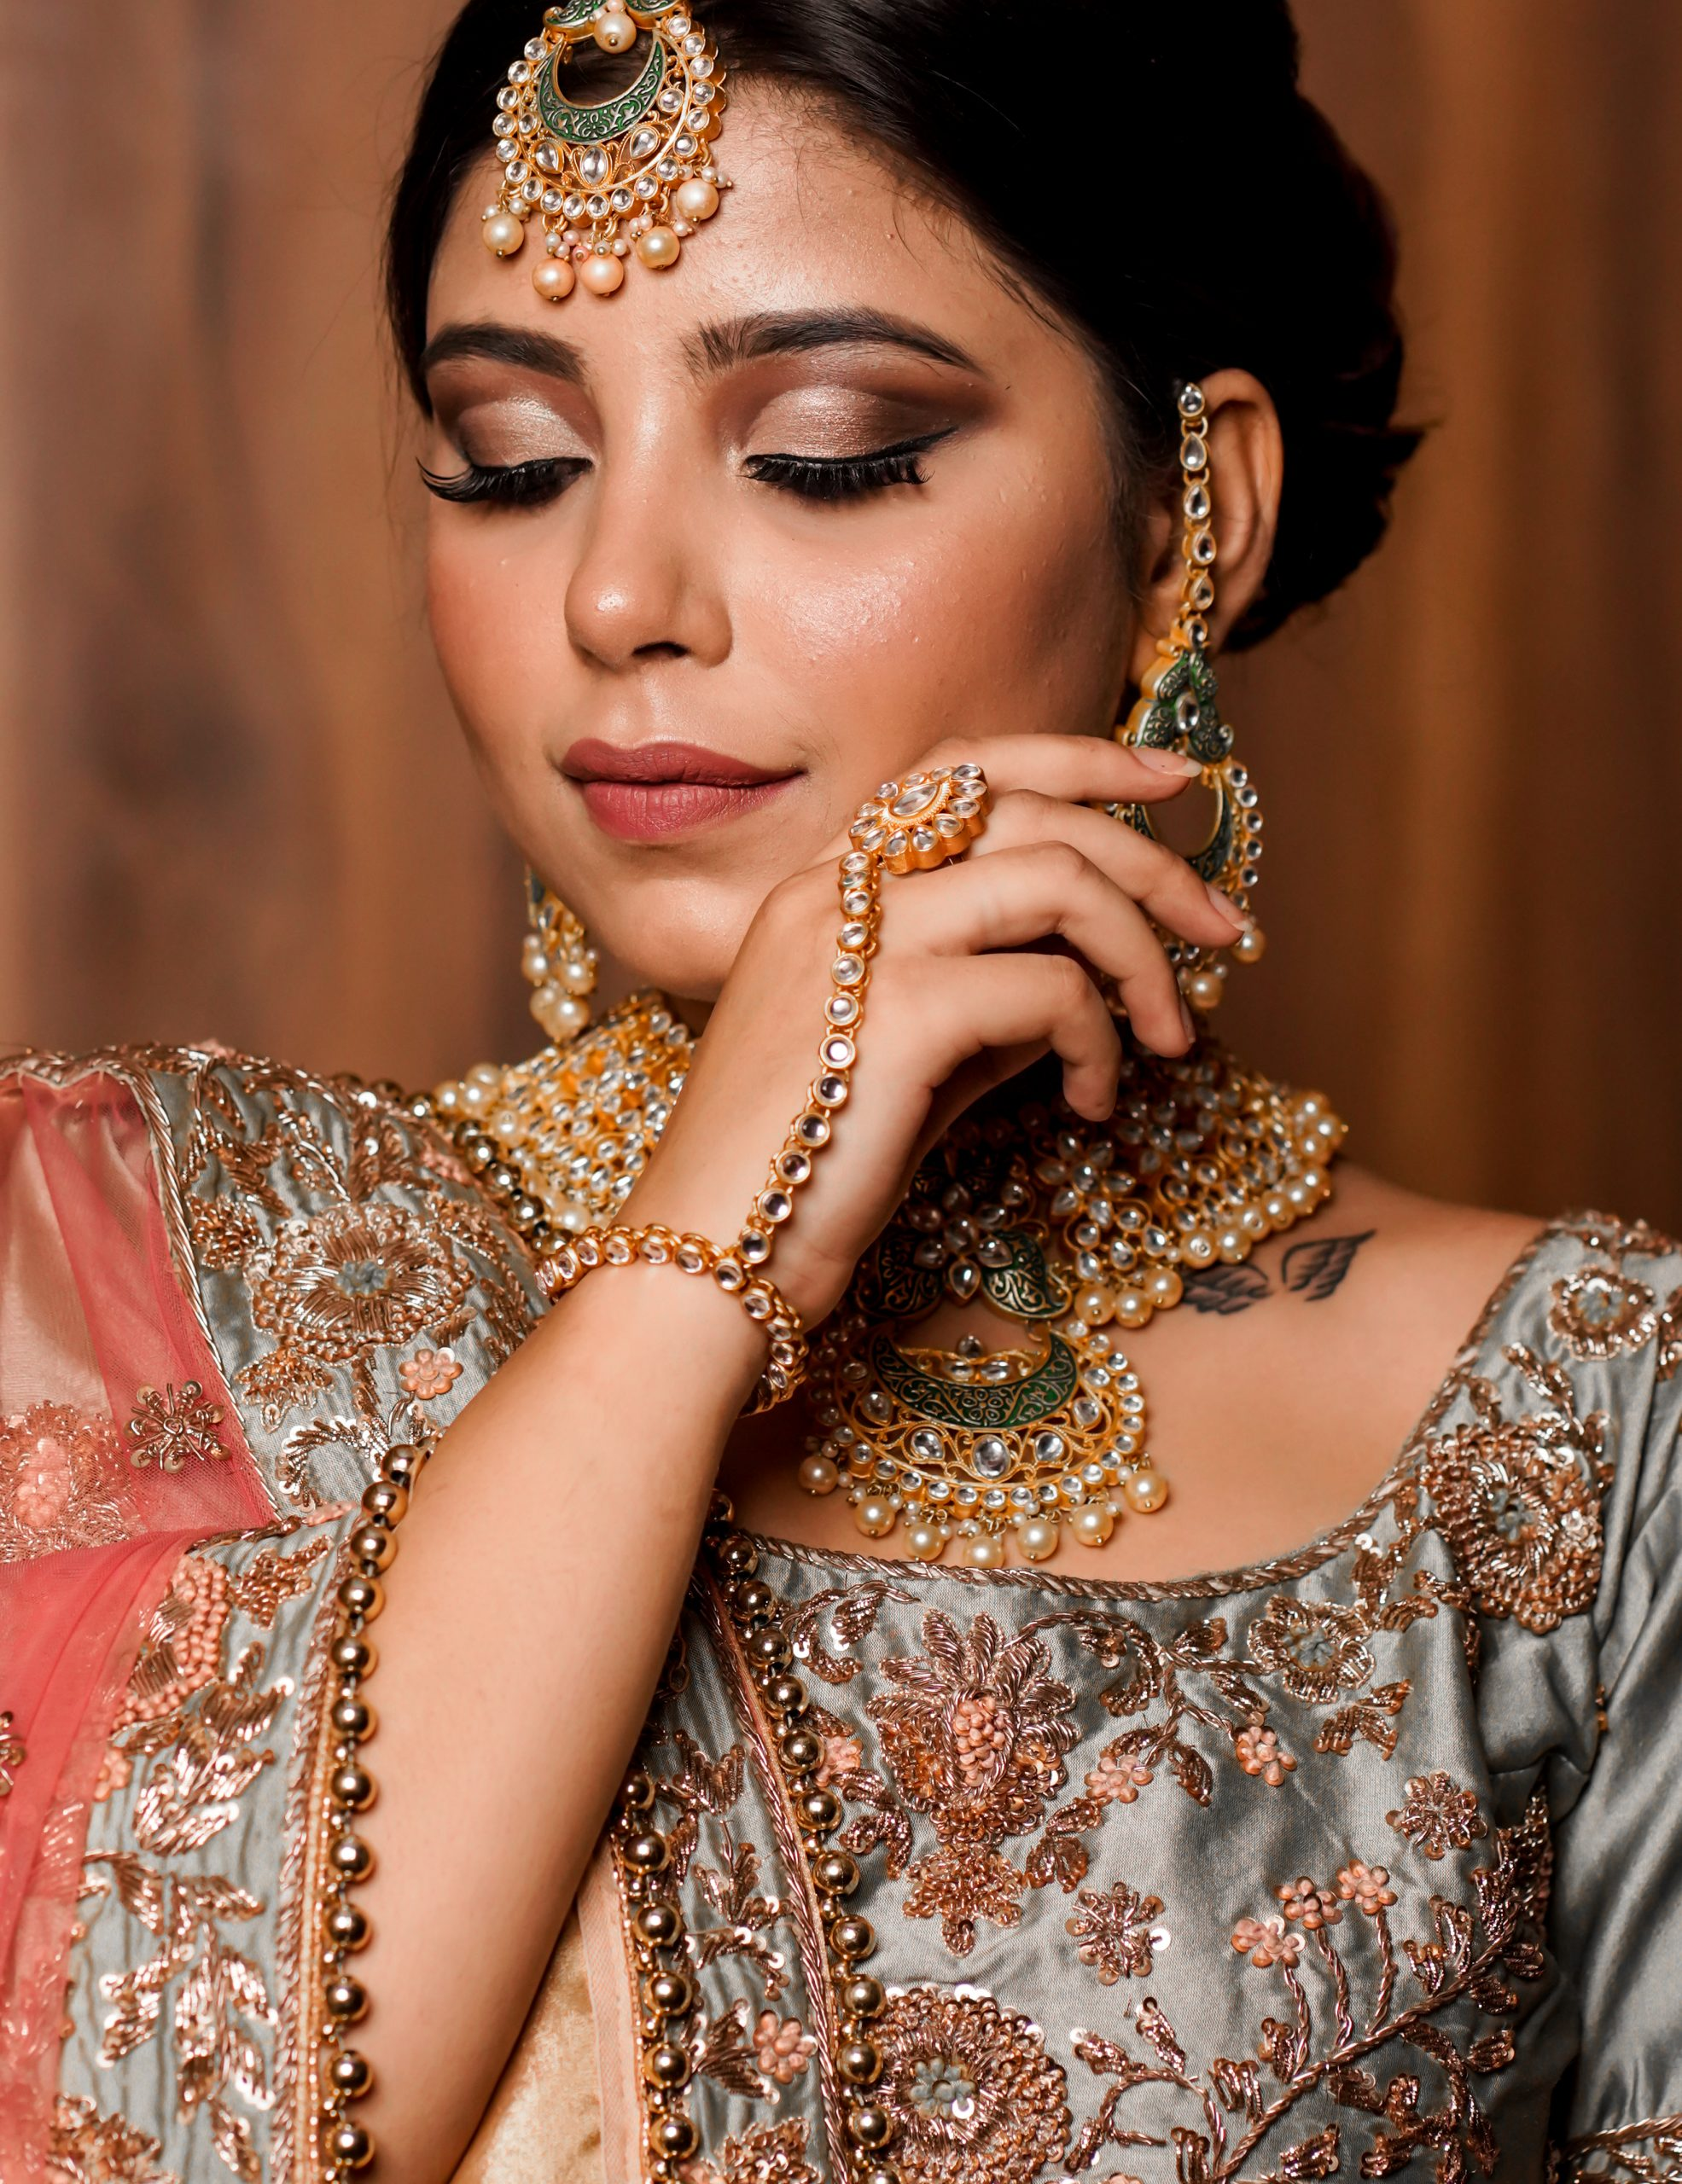 Indian Model with Traditional Clothes